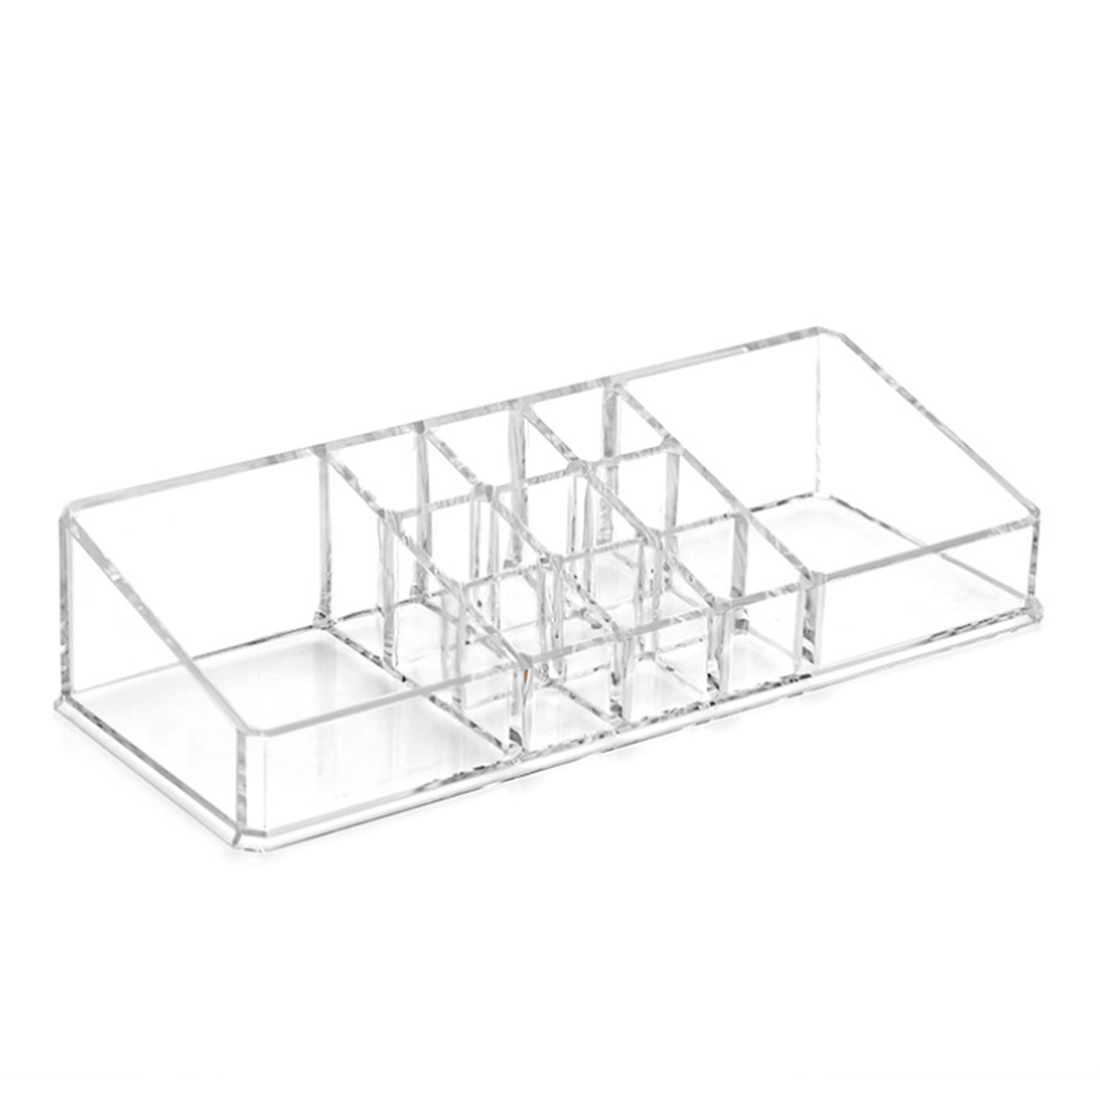 Top 1PC Acrylic Lipstick Holder Display Stand Clear Makeup Organizer Storage Box Jewelry Container Organizer Cosmetics Storage new arrival acrylic makeup brush holder organizer cosmetics makeup brushes showing rack air drying display stand storage shelf